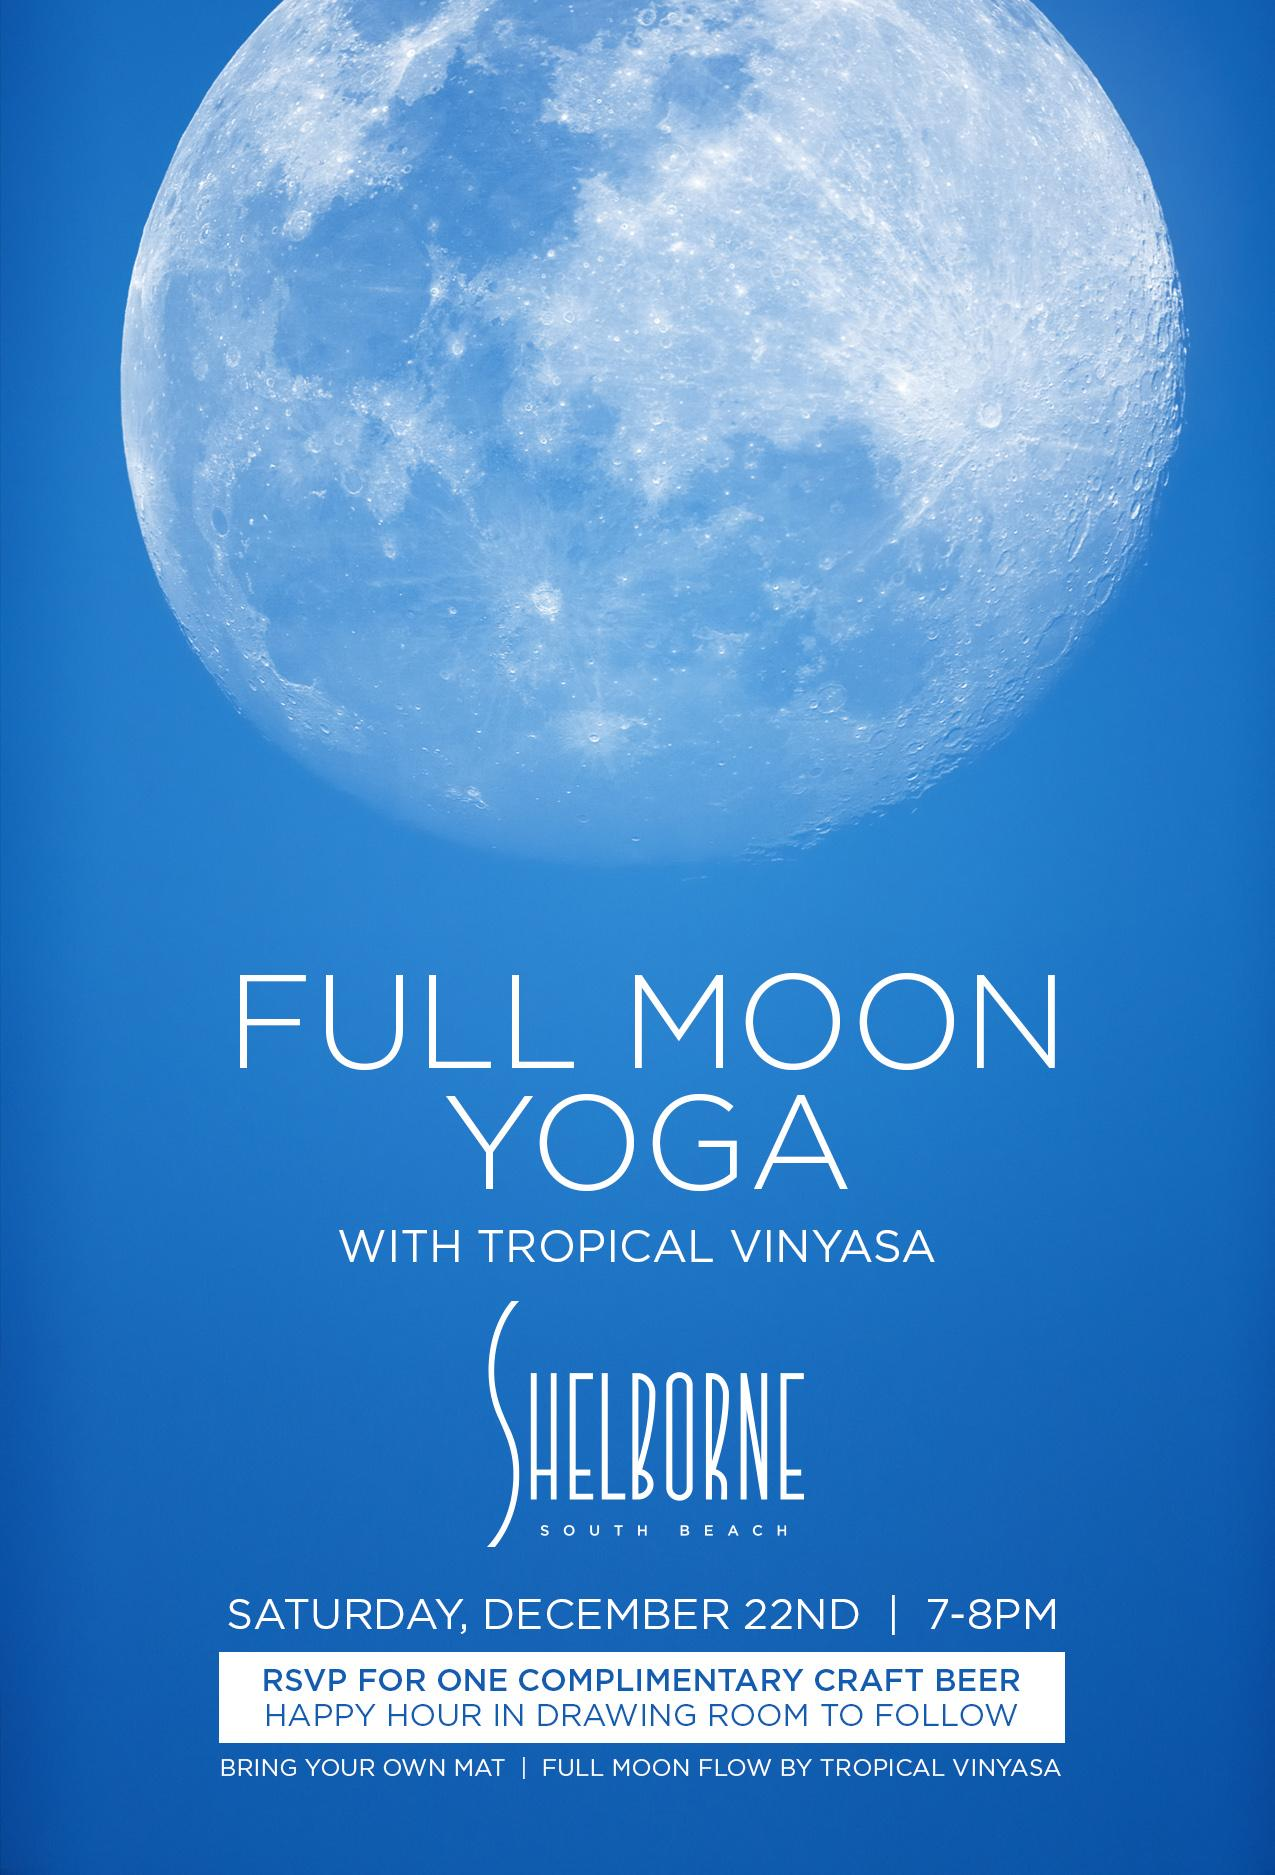 Full Moon Yoga hosted by Tropical Vinyasa at Shelborne South Beach